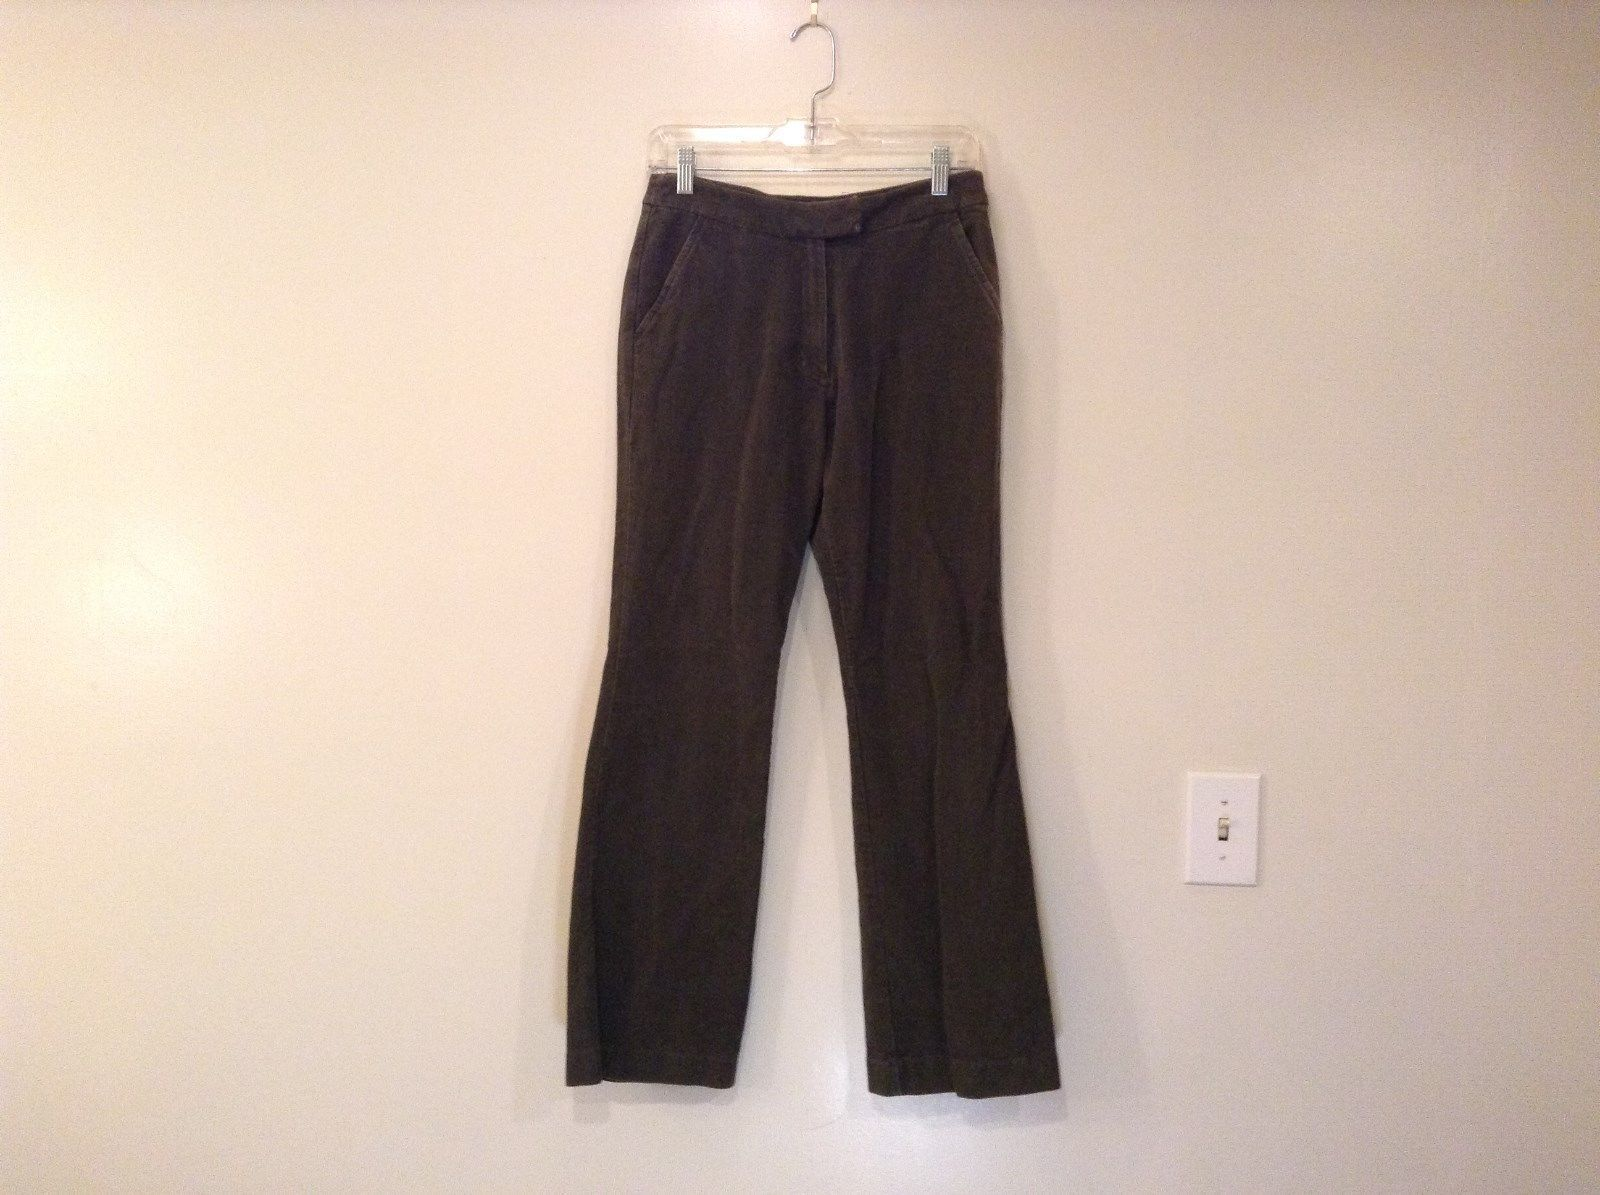 Dark Olive Green Size 10 Reg 100 Percent Cotton Casual Pants Boden Side Pockets